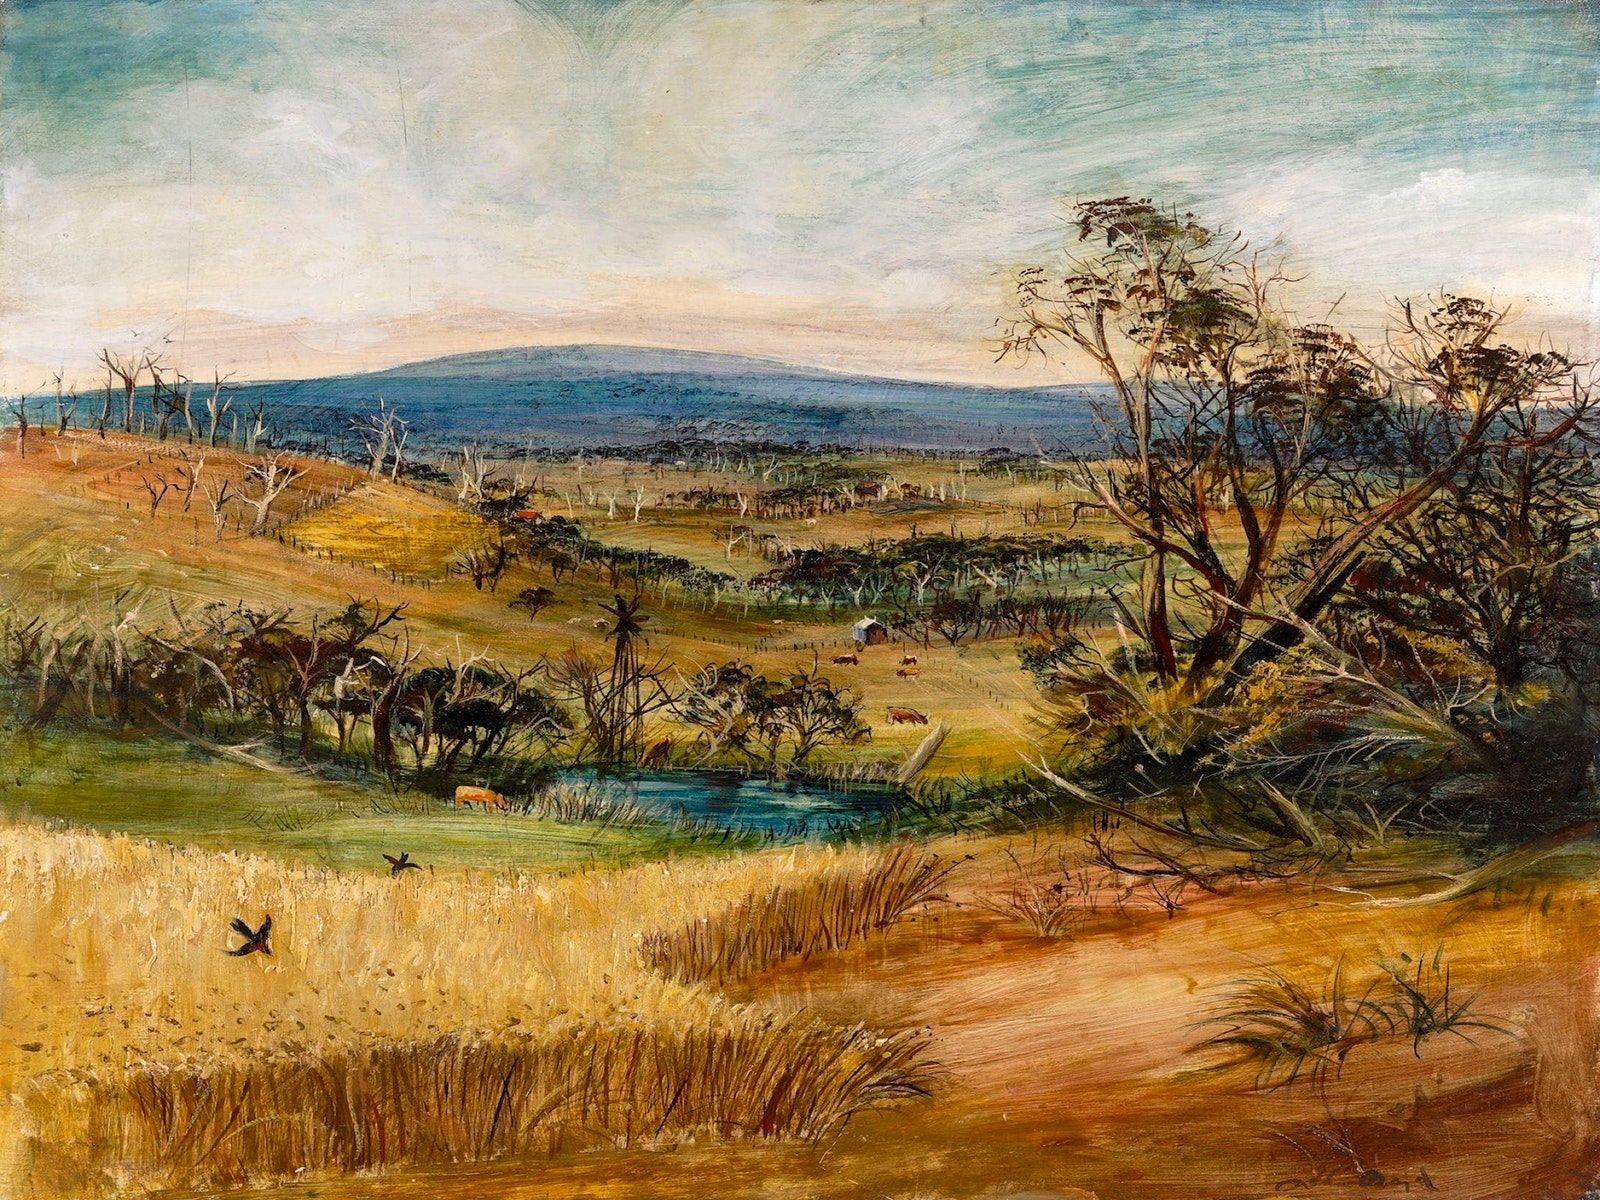 Arthur Boyd, The Wheatfield (1948)